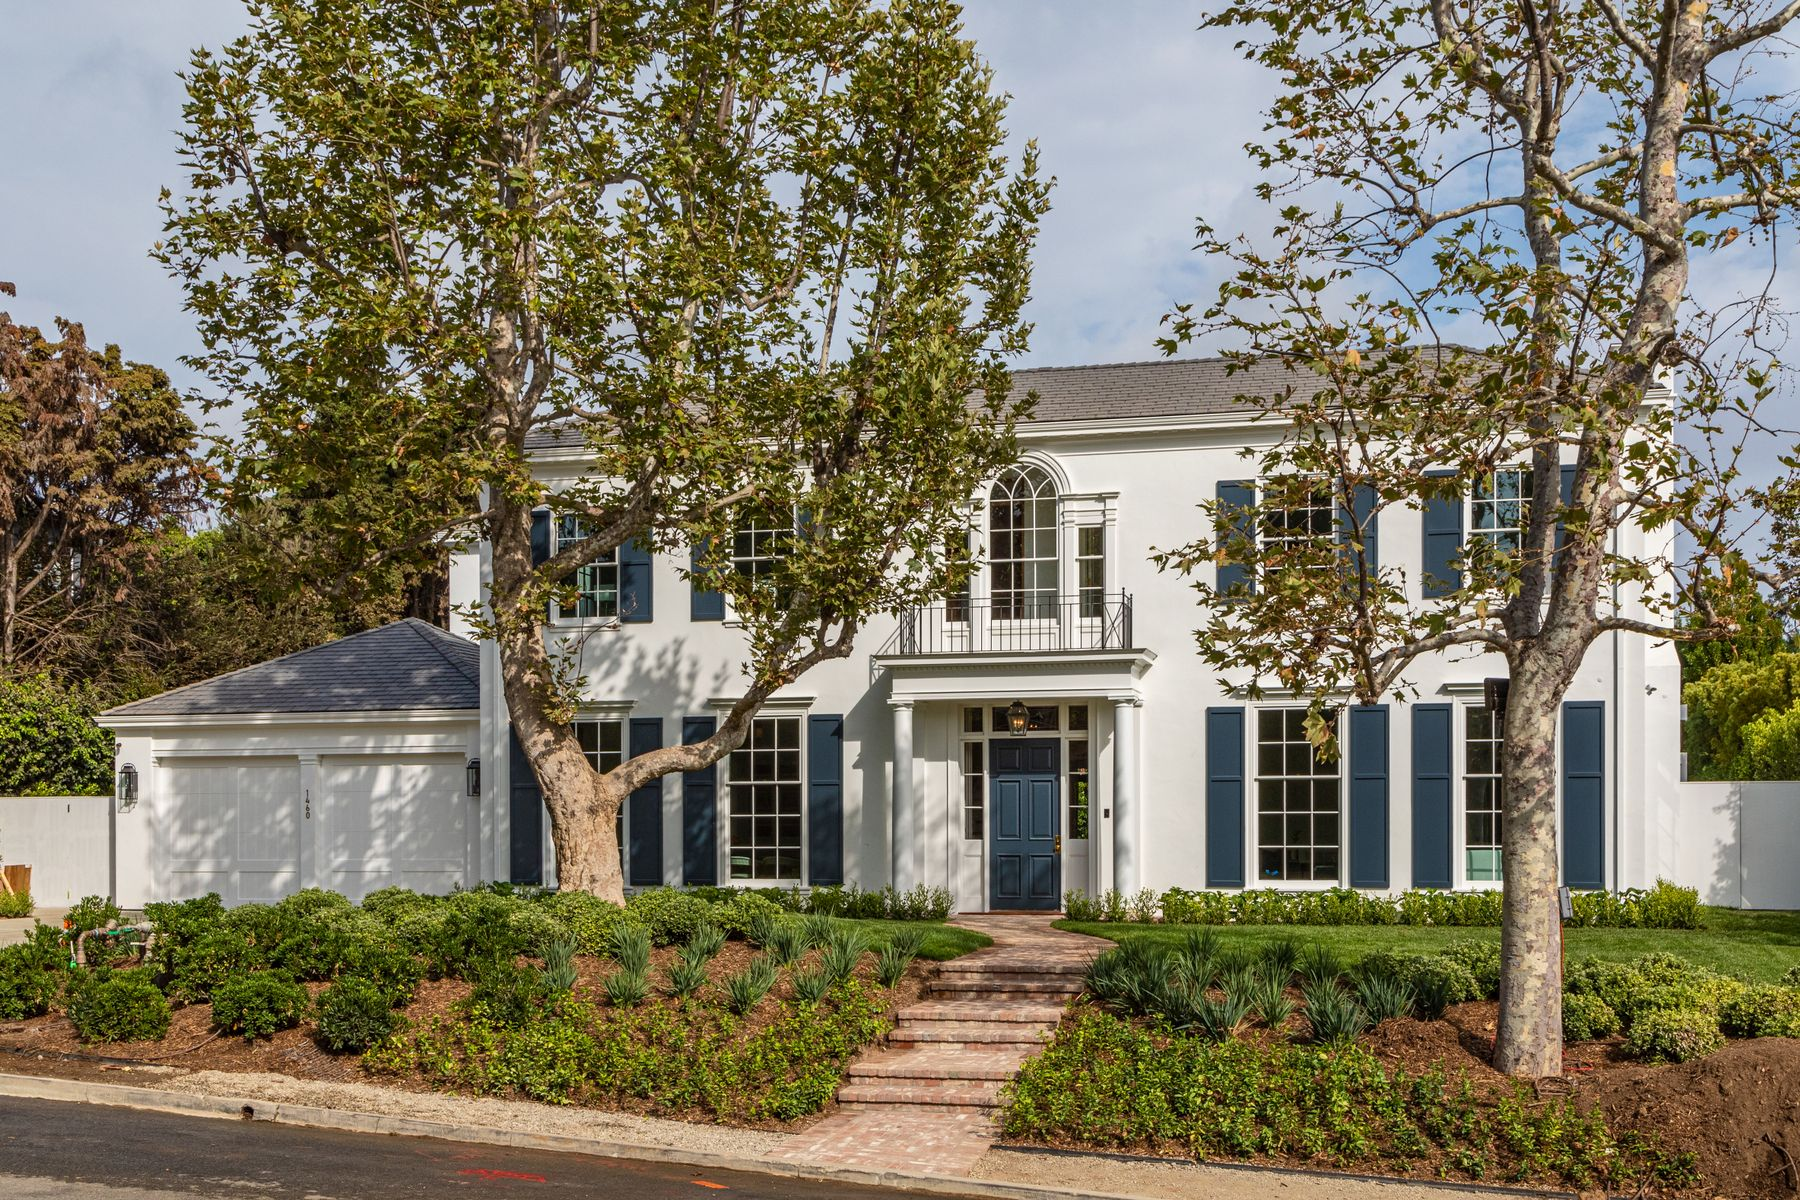 Single Family Homes for Sale at 1460 Amalfi Drive Pacific Palisades, California 90272 United States